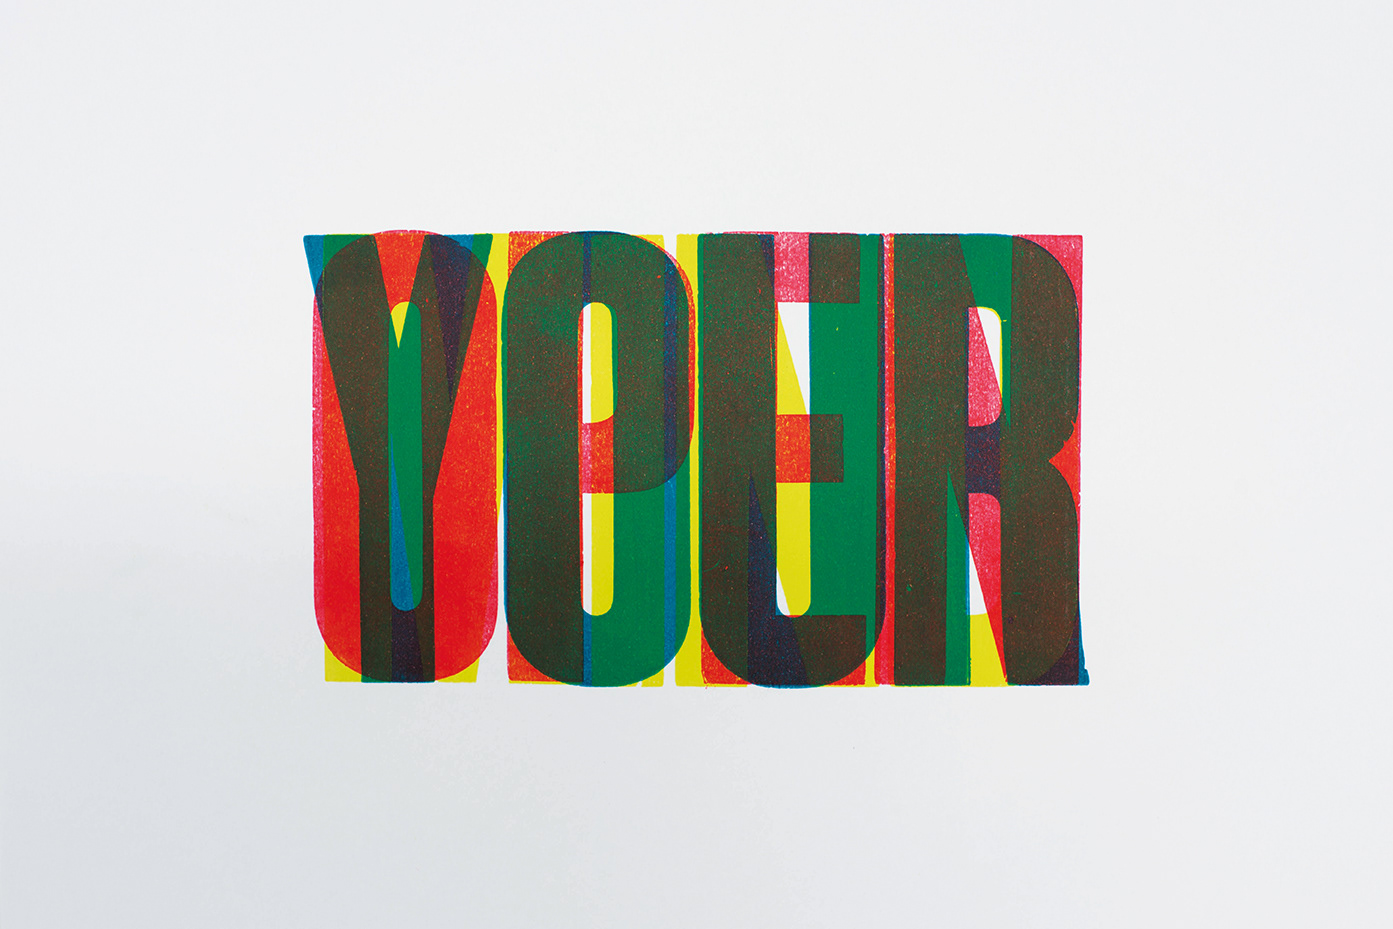 Joshua Fathers Graphic Design Open Your Mind